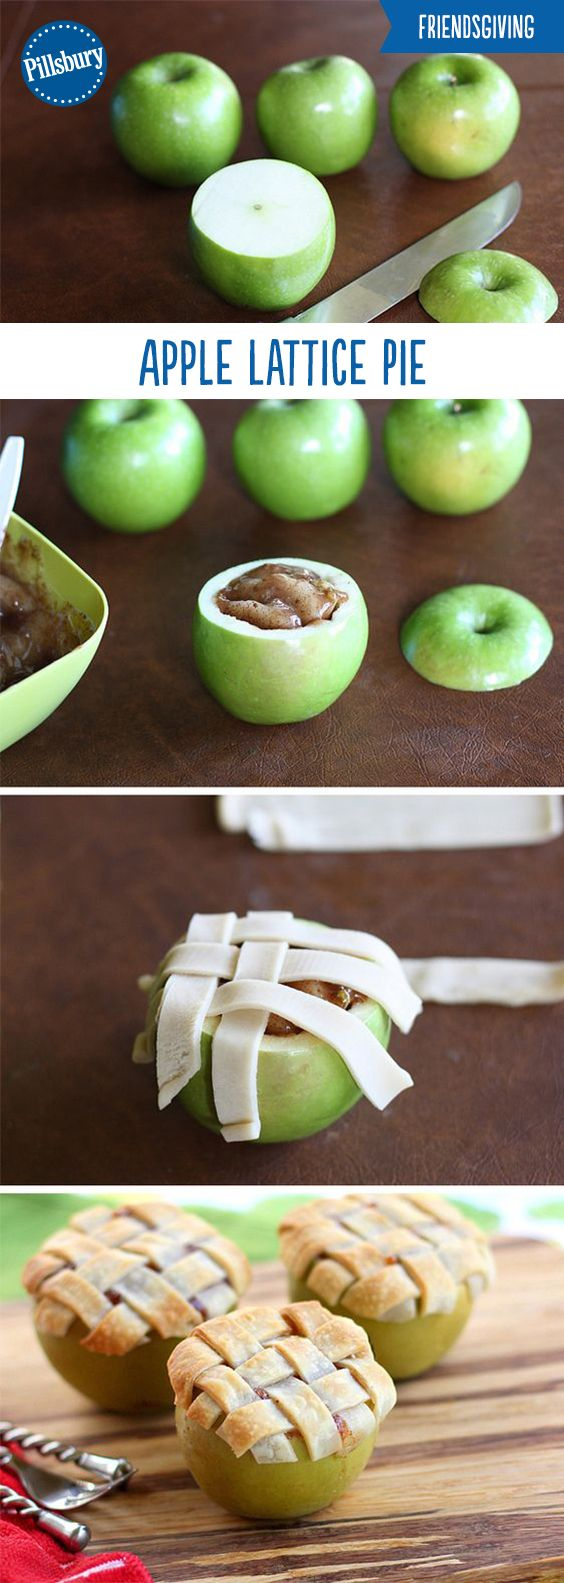 Your friends will give you creativity props for bringing this Apple Lattice Pie Baked in an Apple to your Friendsgiving! It's super easy, impressive and it's a guaranteed hit this holiday season. Delicious apples filled with apple pie filling and topped with pie crust is a fun treat everyone will enjoy!